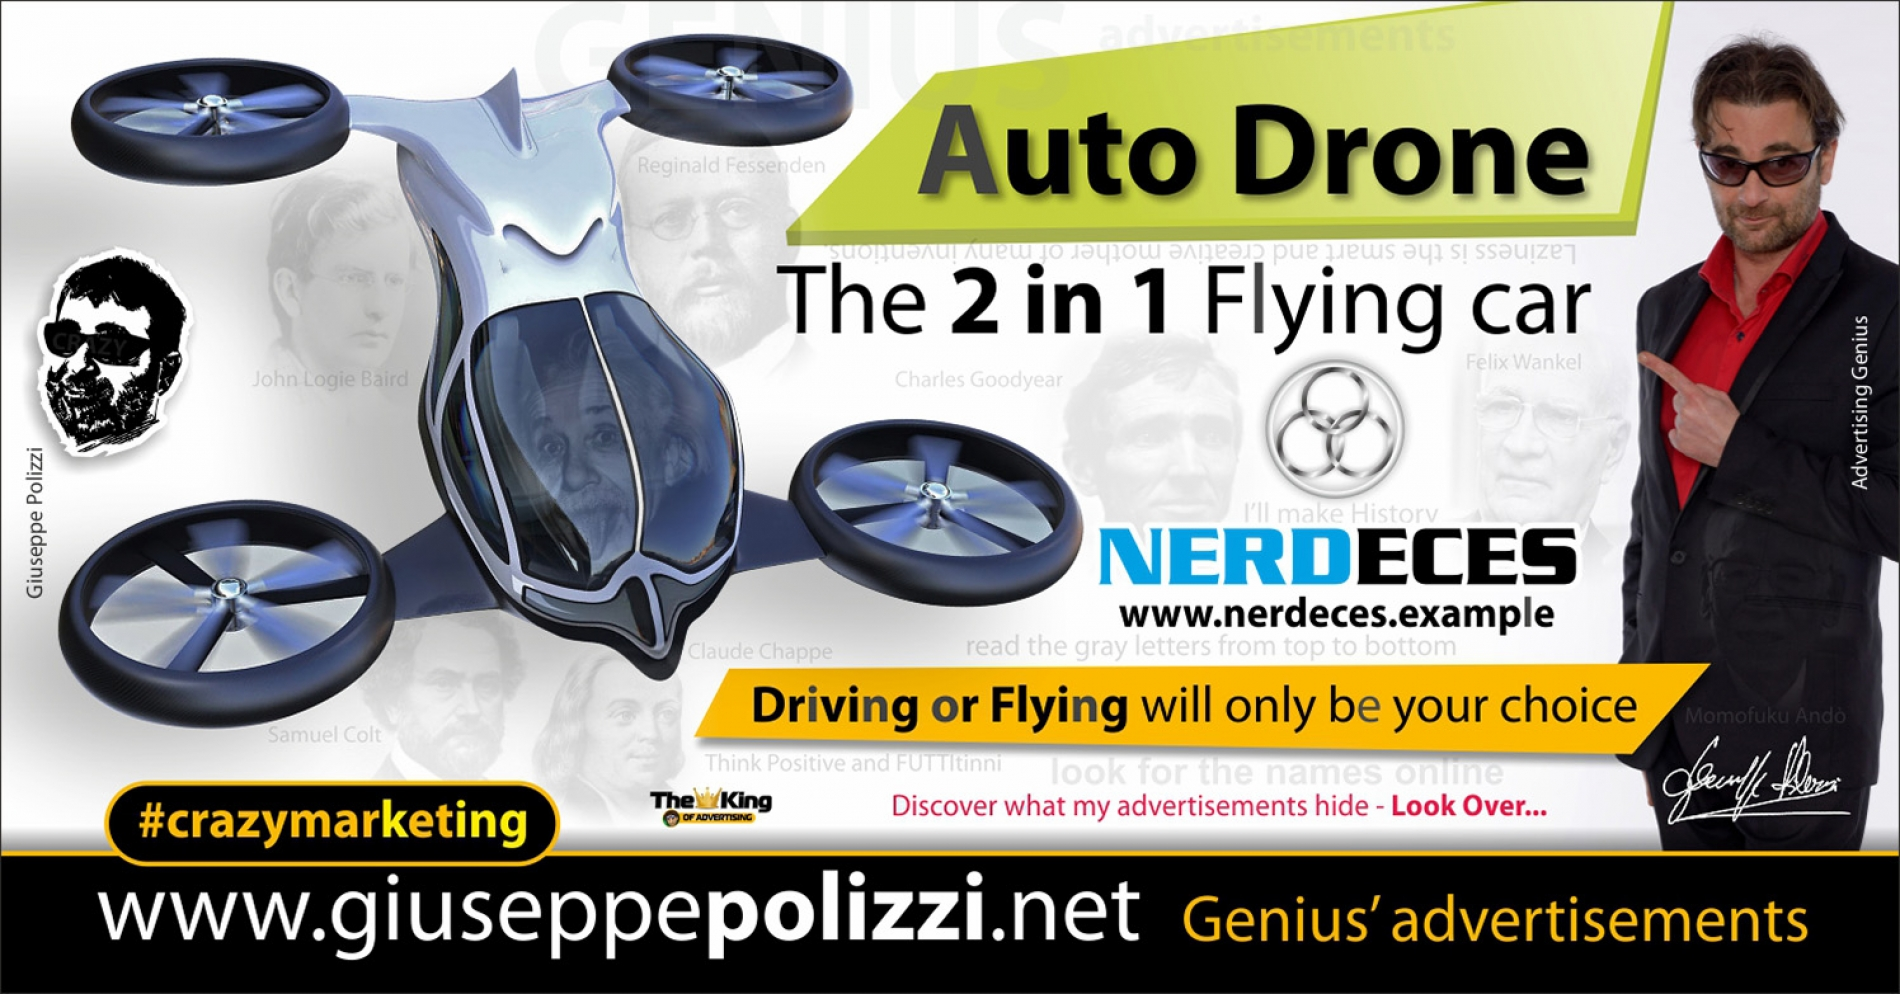 giuseppe polizzi crazymarketing Auto Drone 2 in 1  genius advertisements 2019